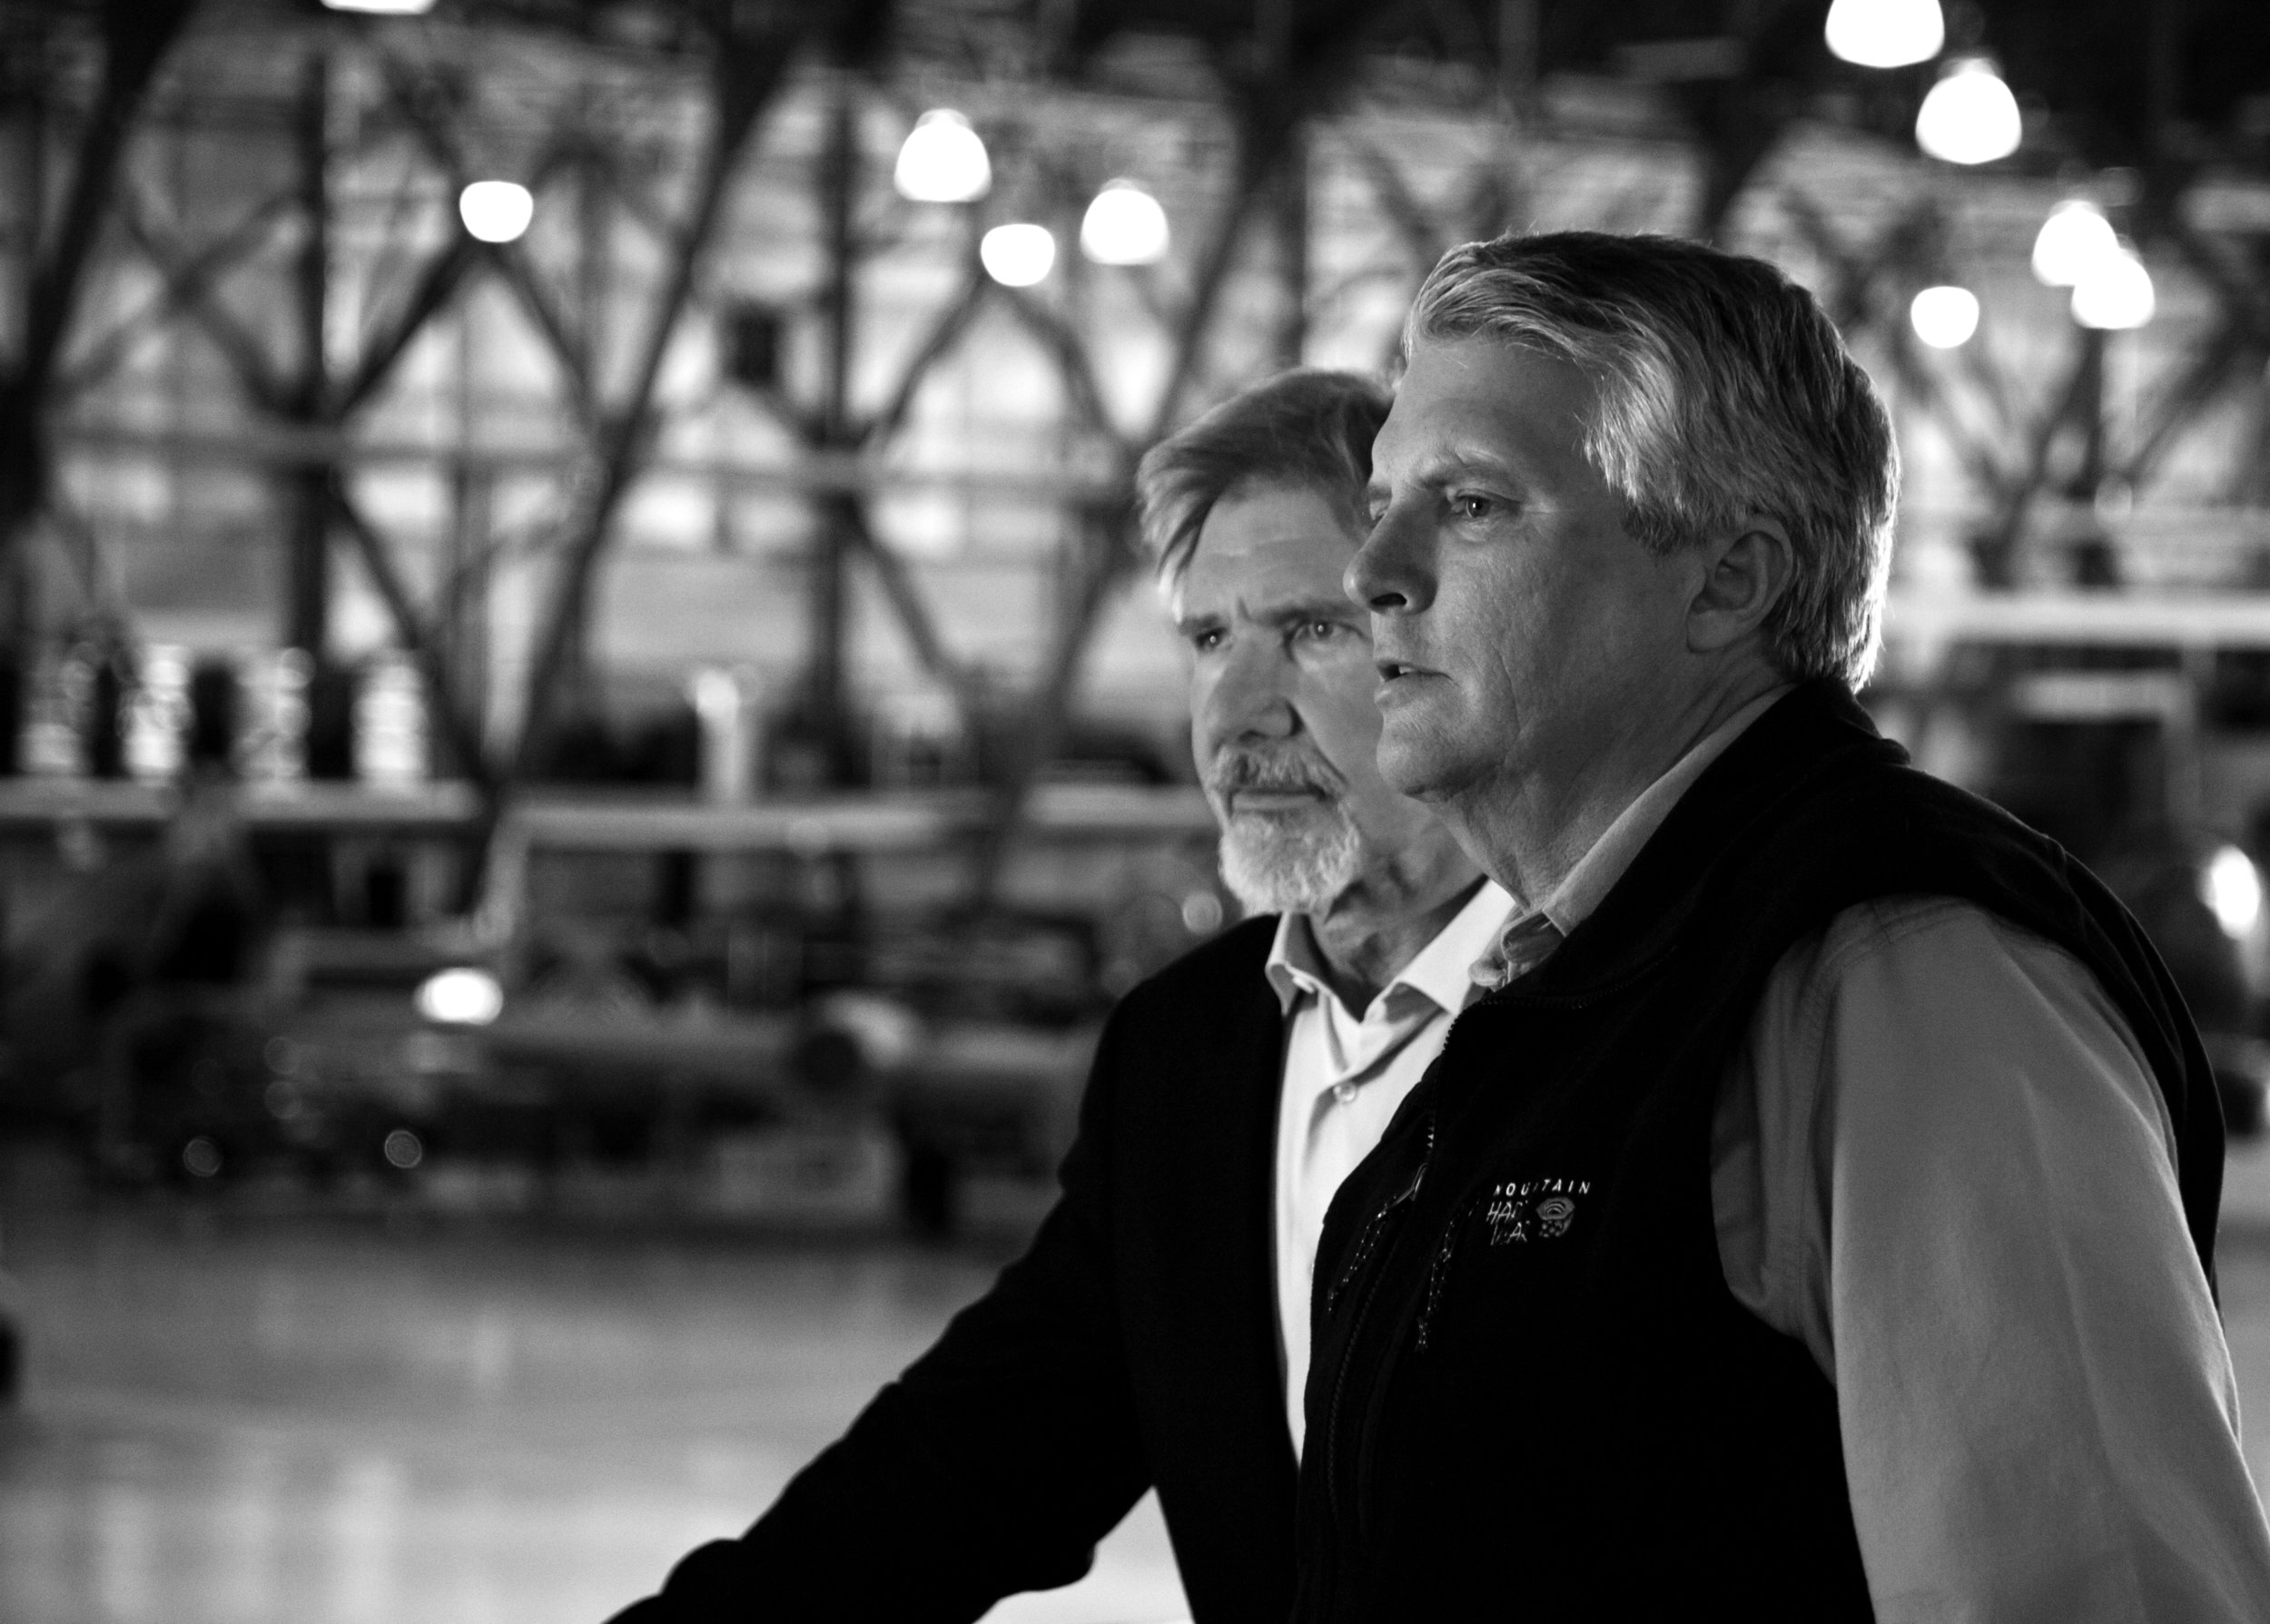 On location with Harrison Ford, overseeing writing and direction of a promotional film shoot for Wings Over the Rockies.